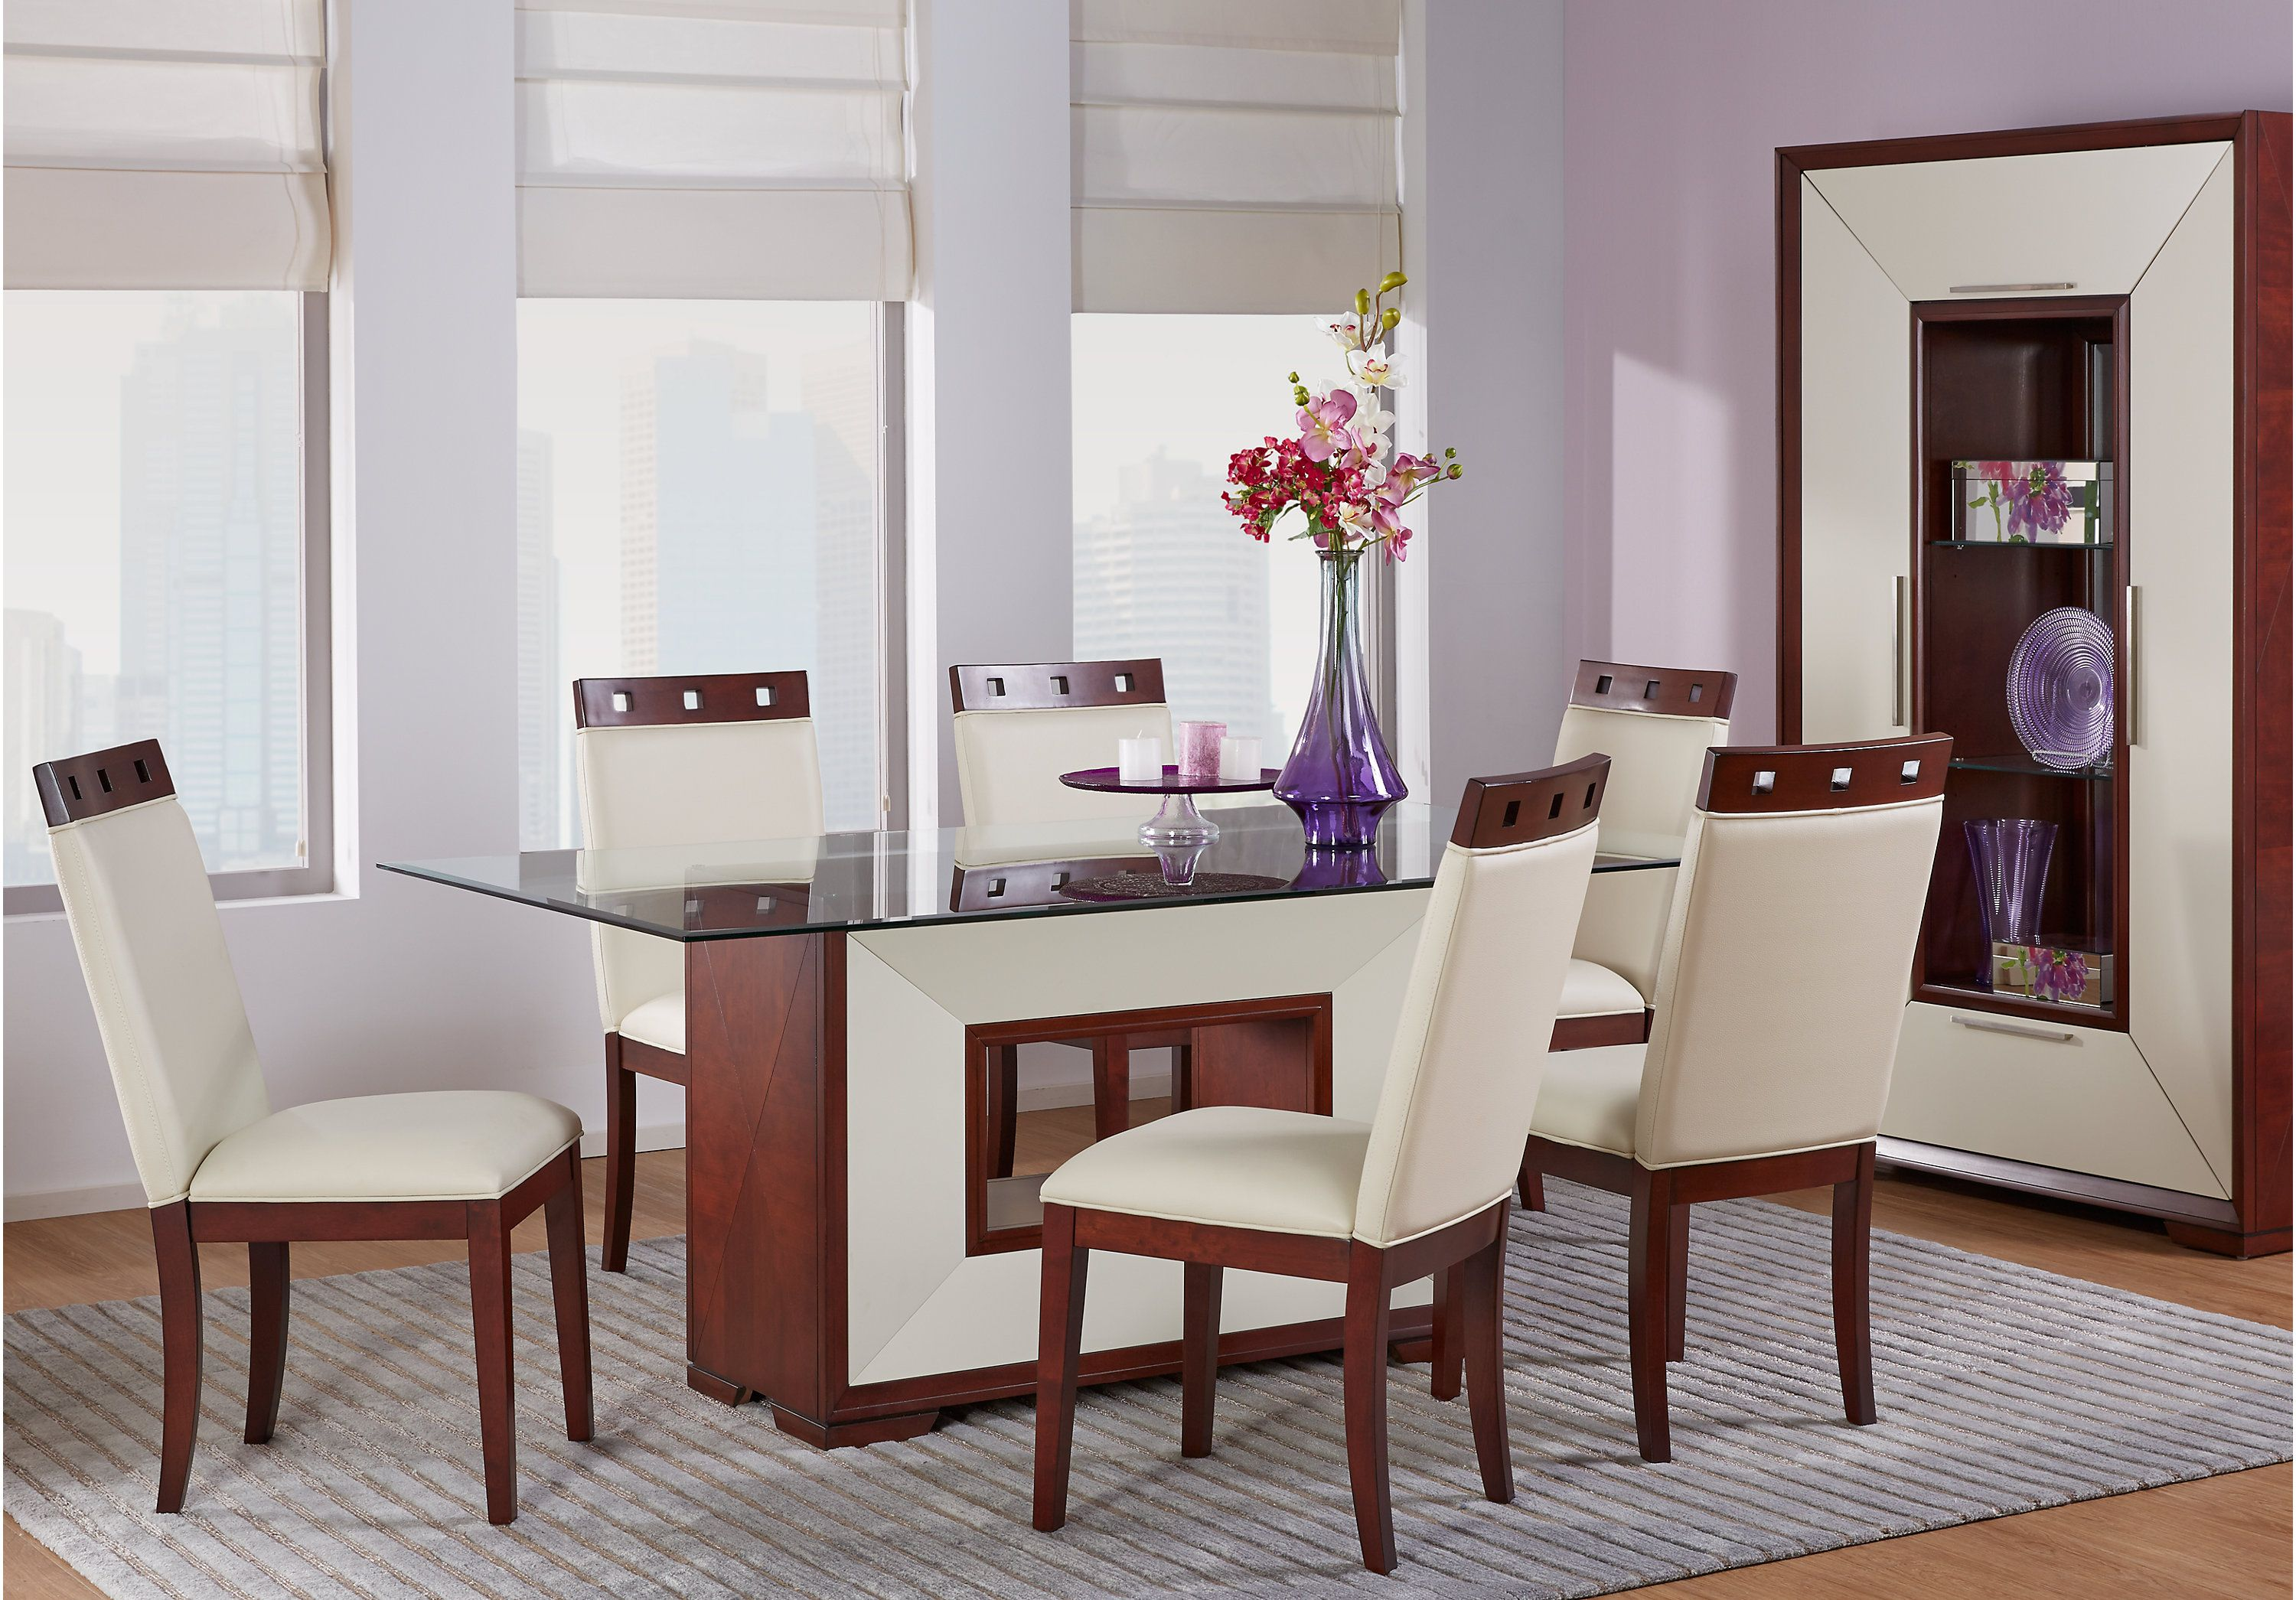 Sofia Vergara Savona Ivory 5 Pc Rectangle Dining Room With Glass